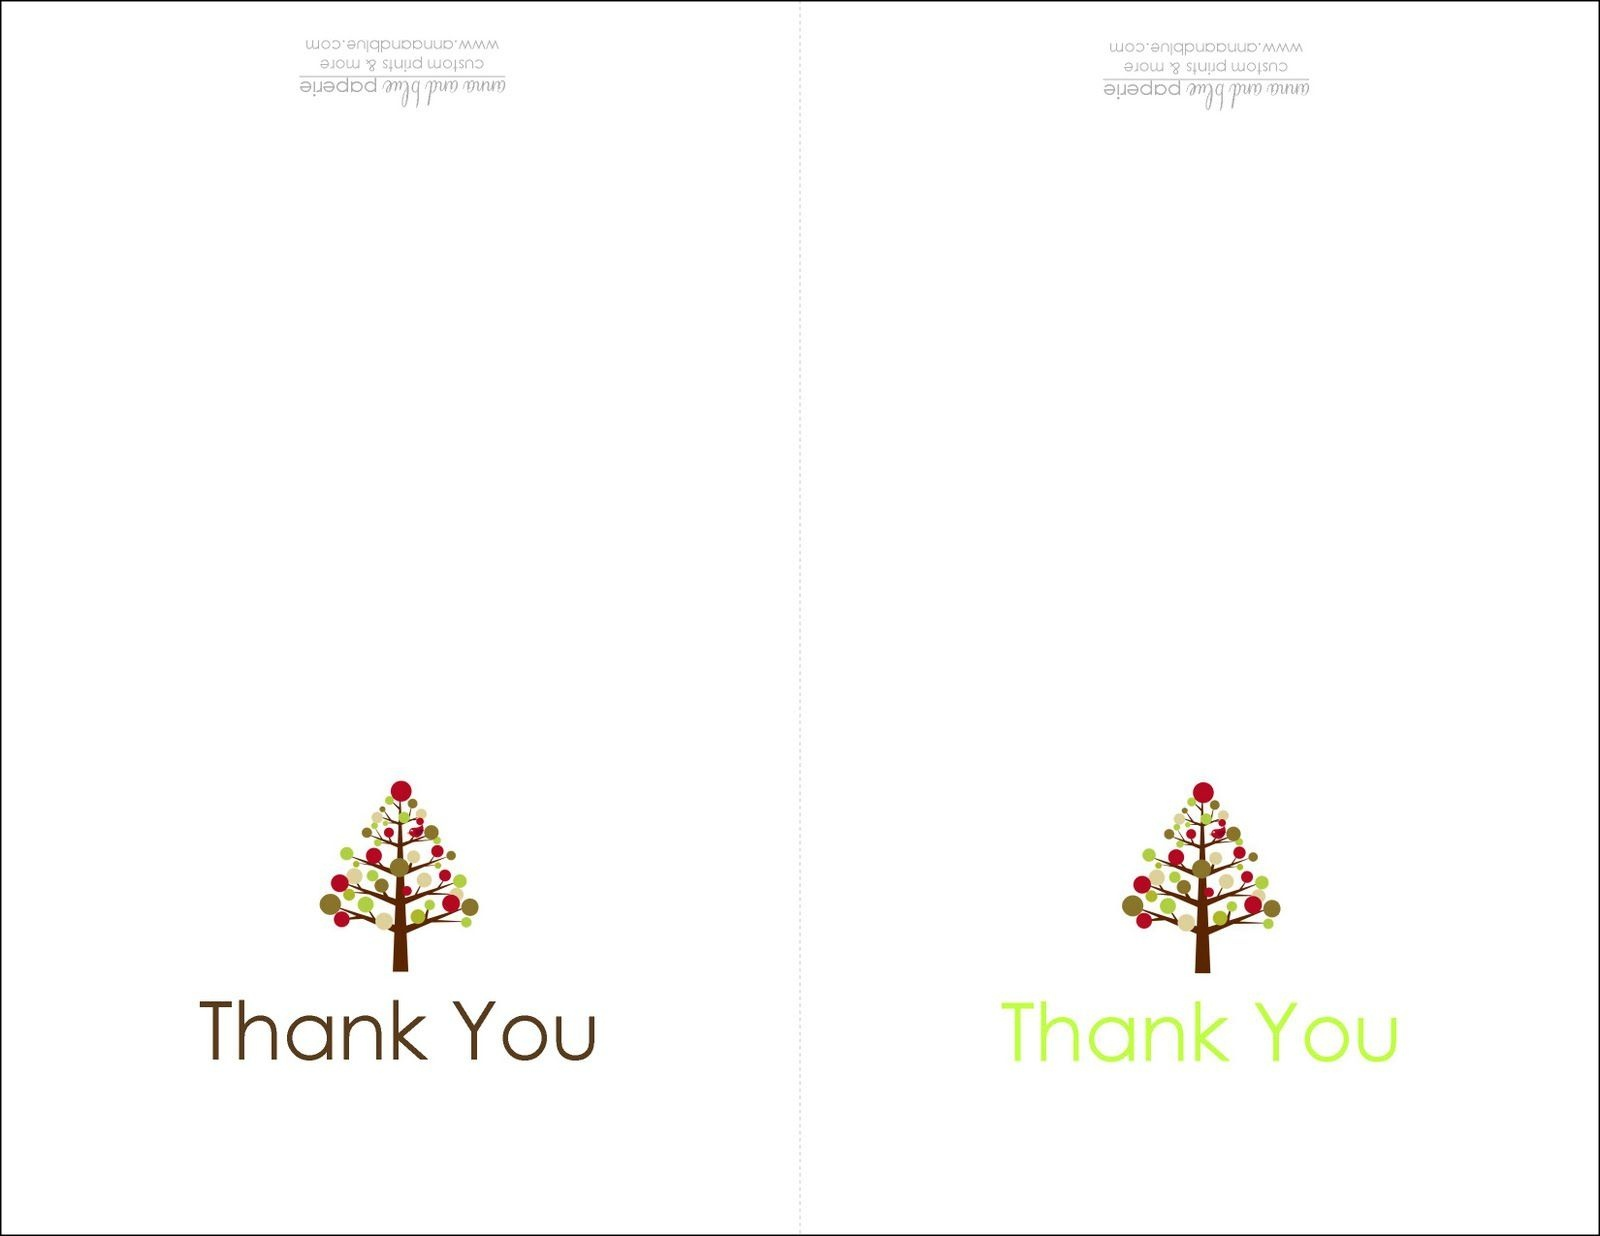 Thank You Cards Printable | Printable | Free Printable Christmas - Free Online Printable Christmas Cards